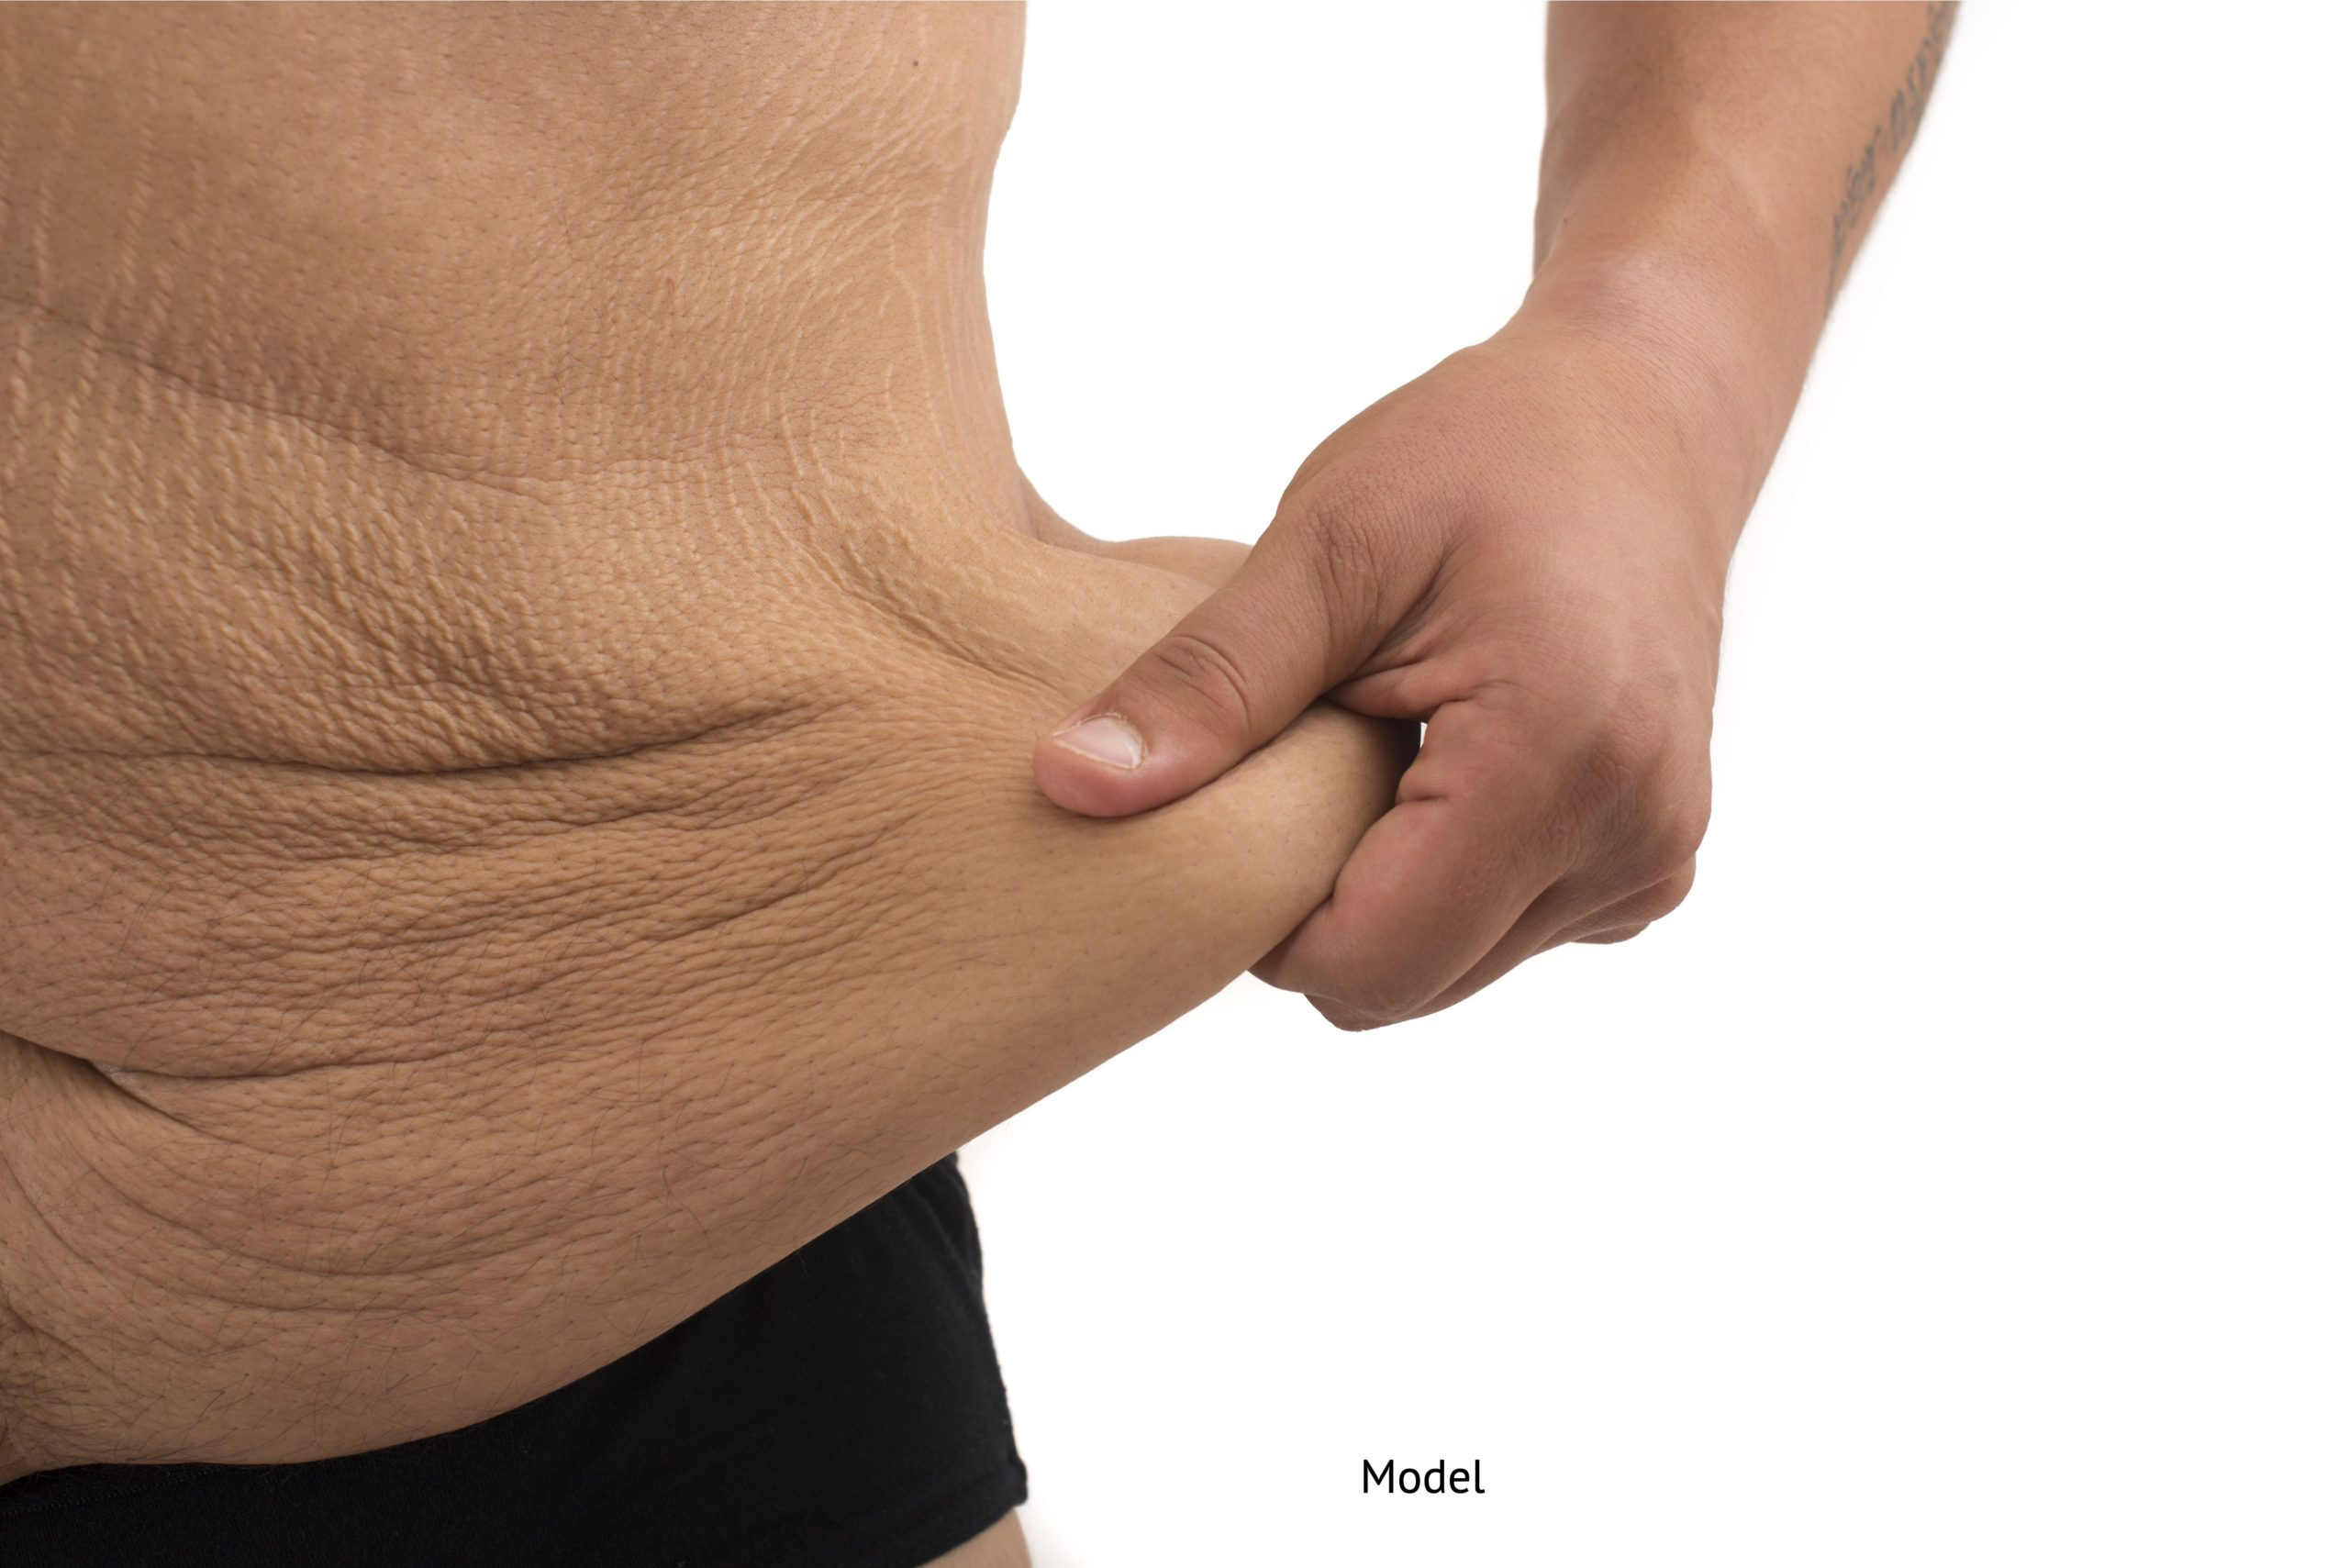 man with excess skin on the abdomen who could benefit from skin removal surgery